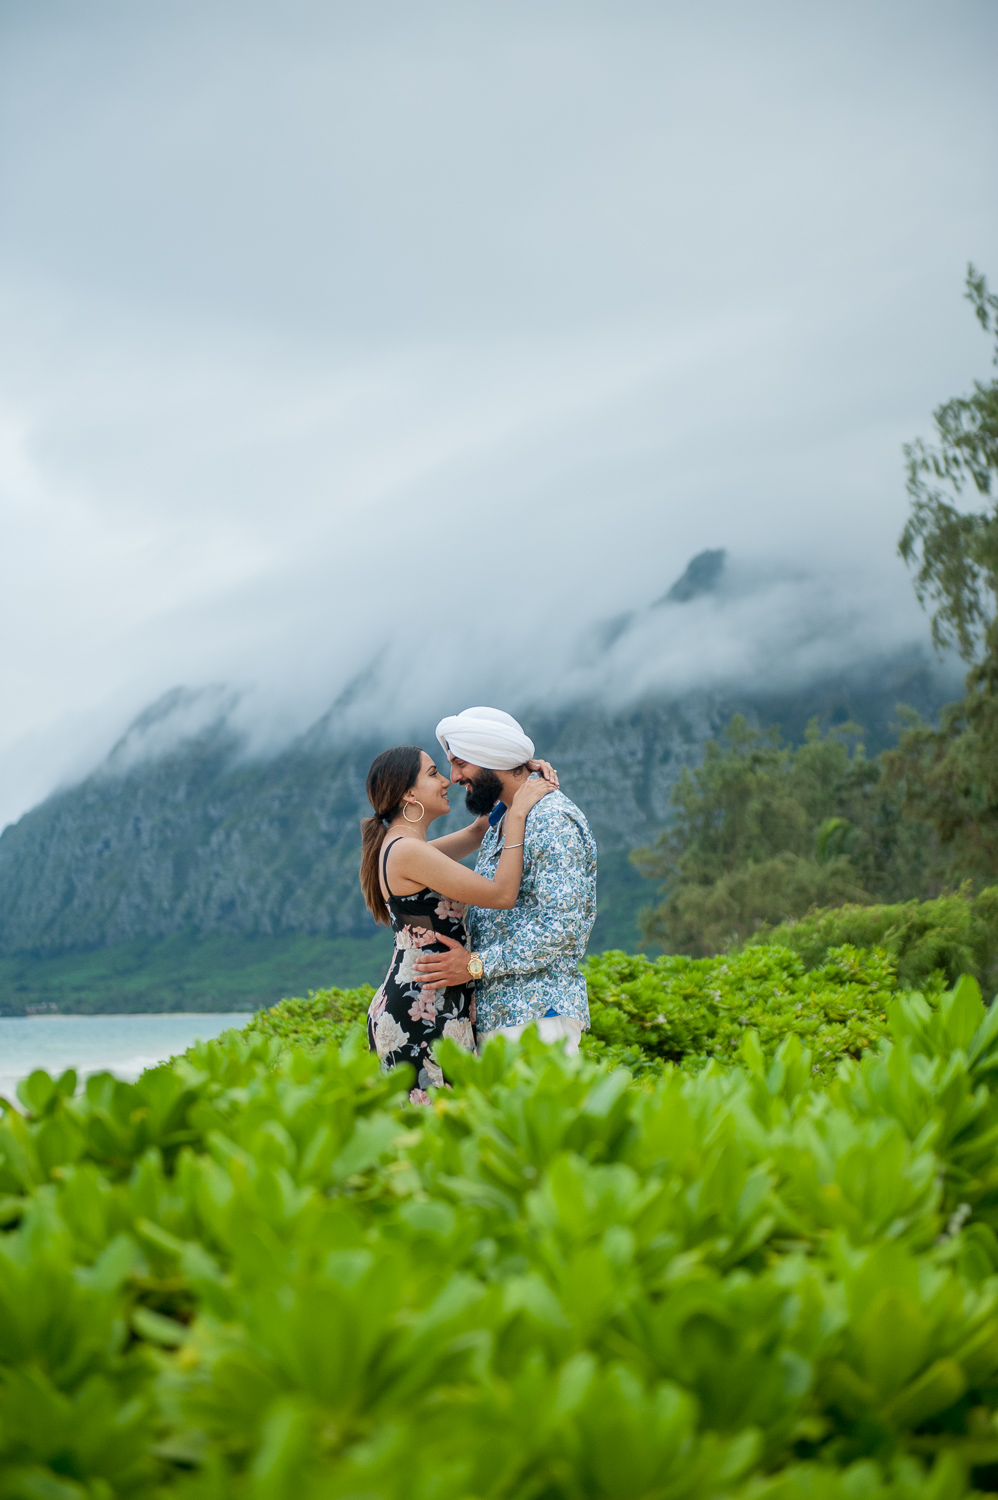 Indian Couple at Waimanalo Beach with mountains in background